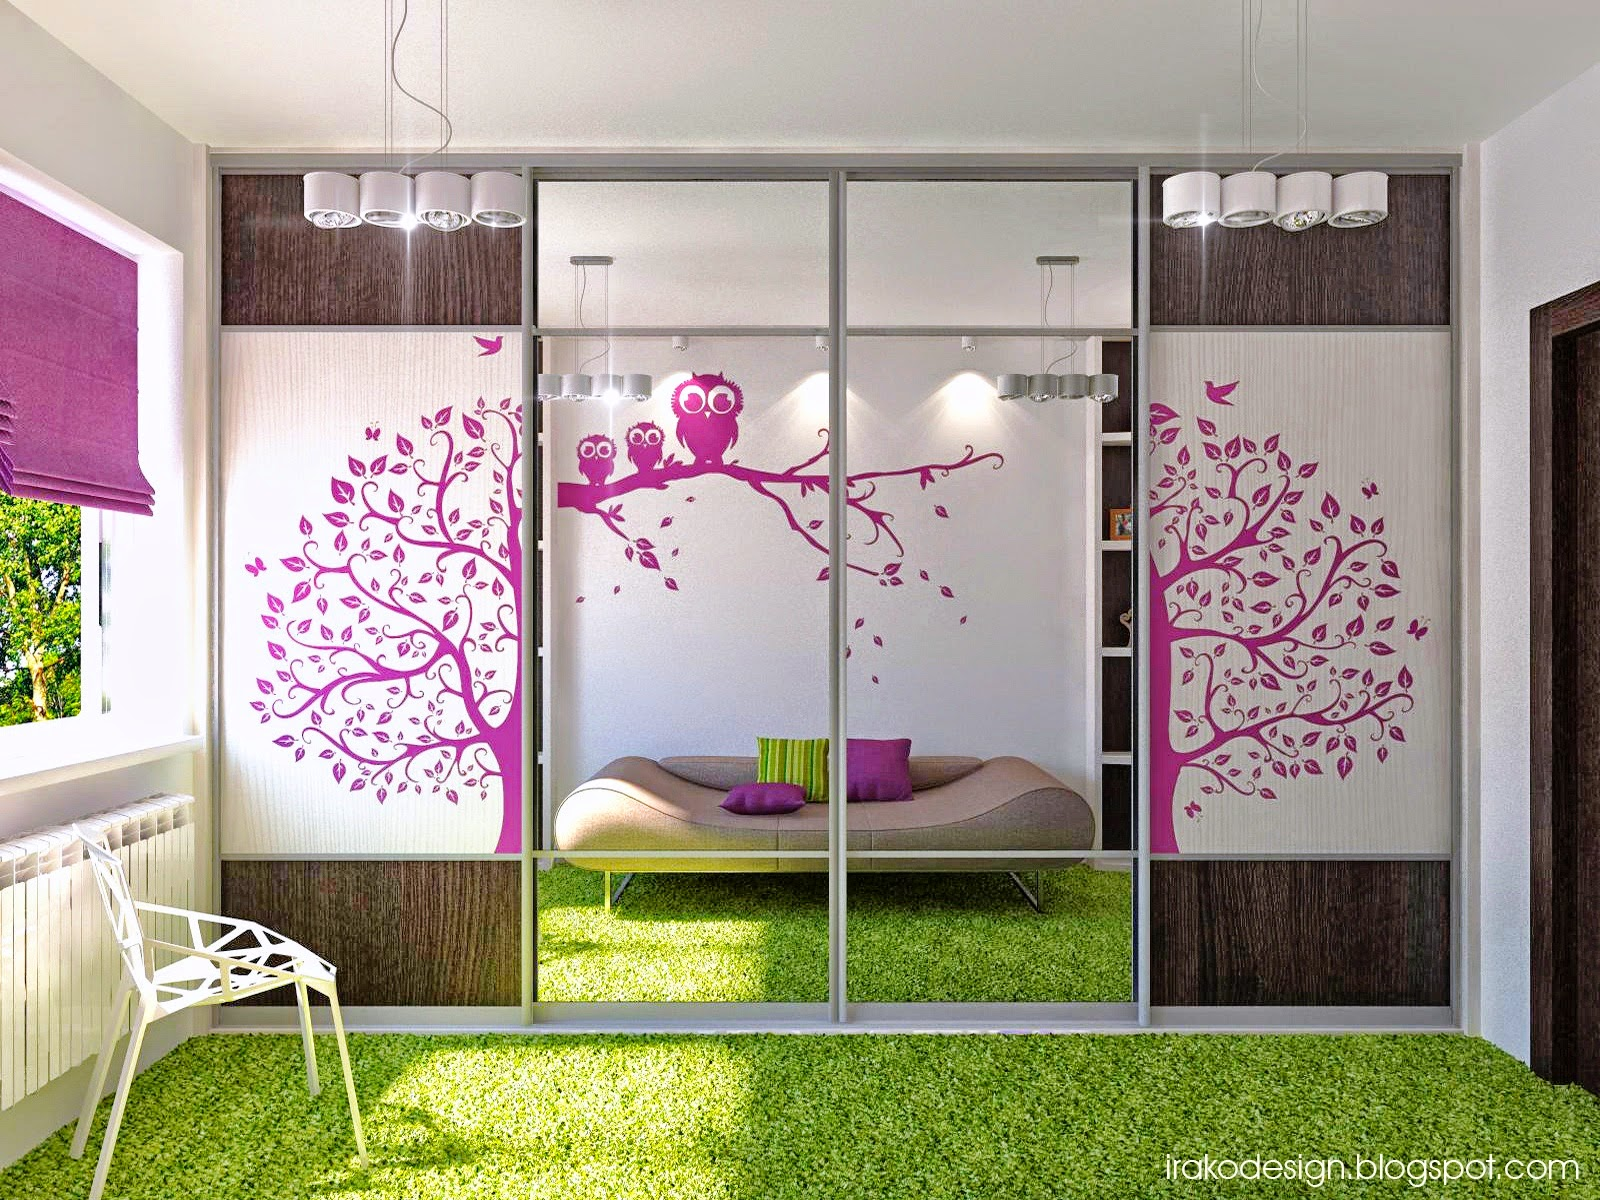 4 girls and teenage bedroom designs girls and teenage bedroom designs - Design A Girls Bedroom